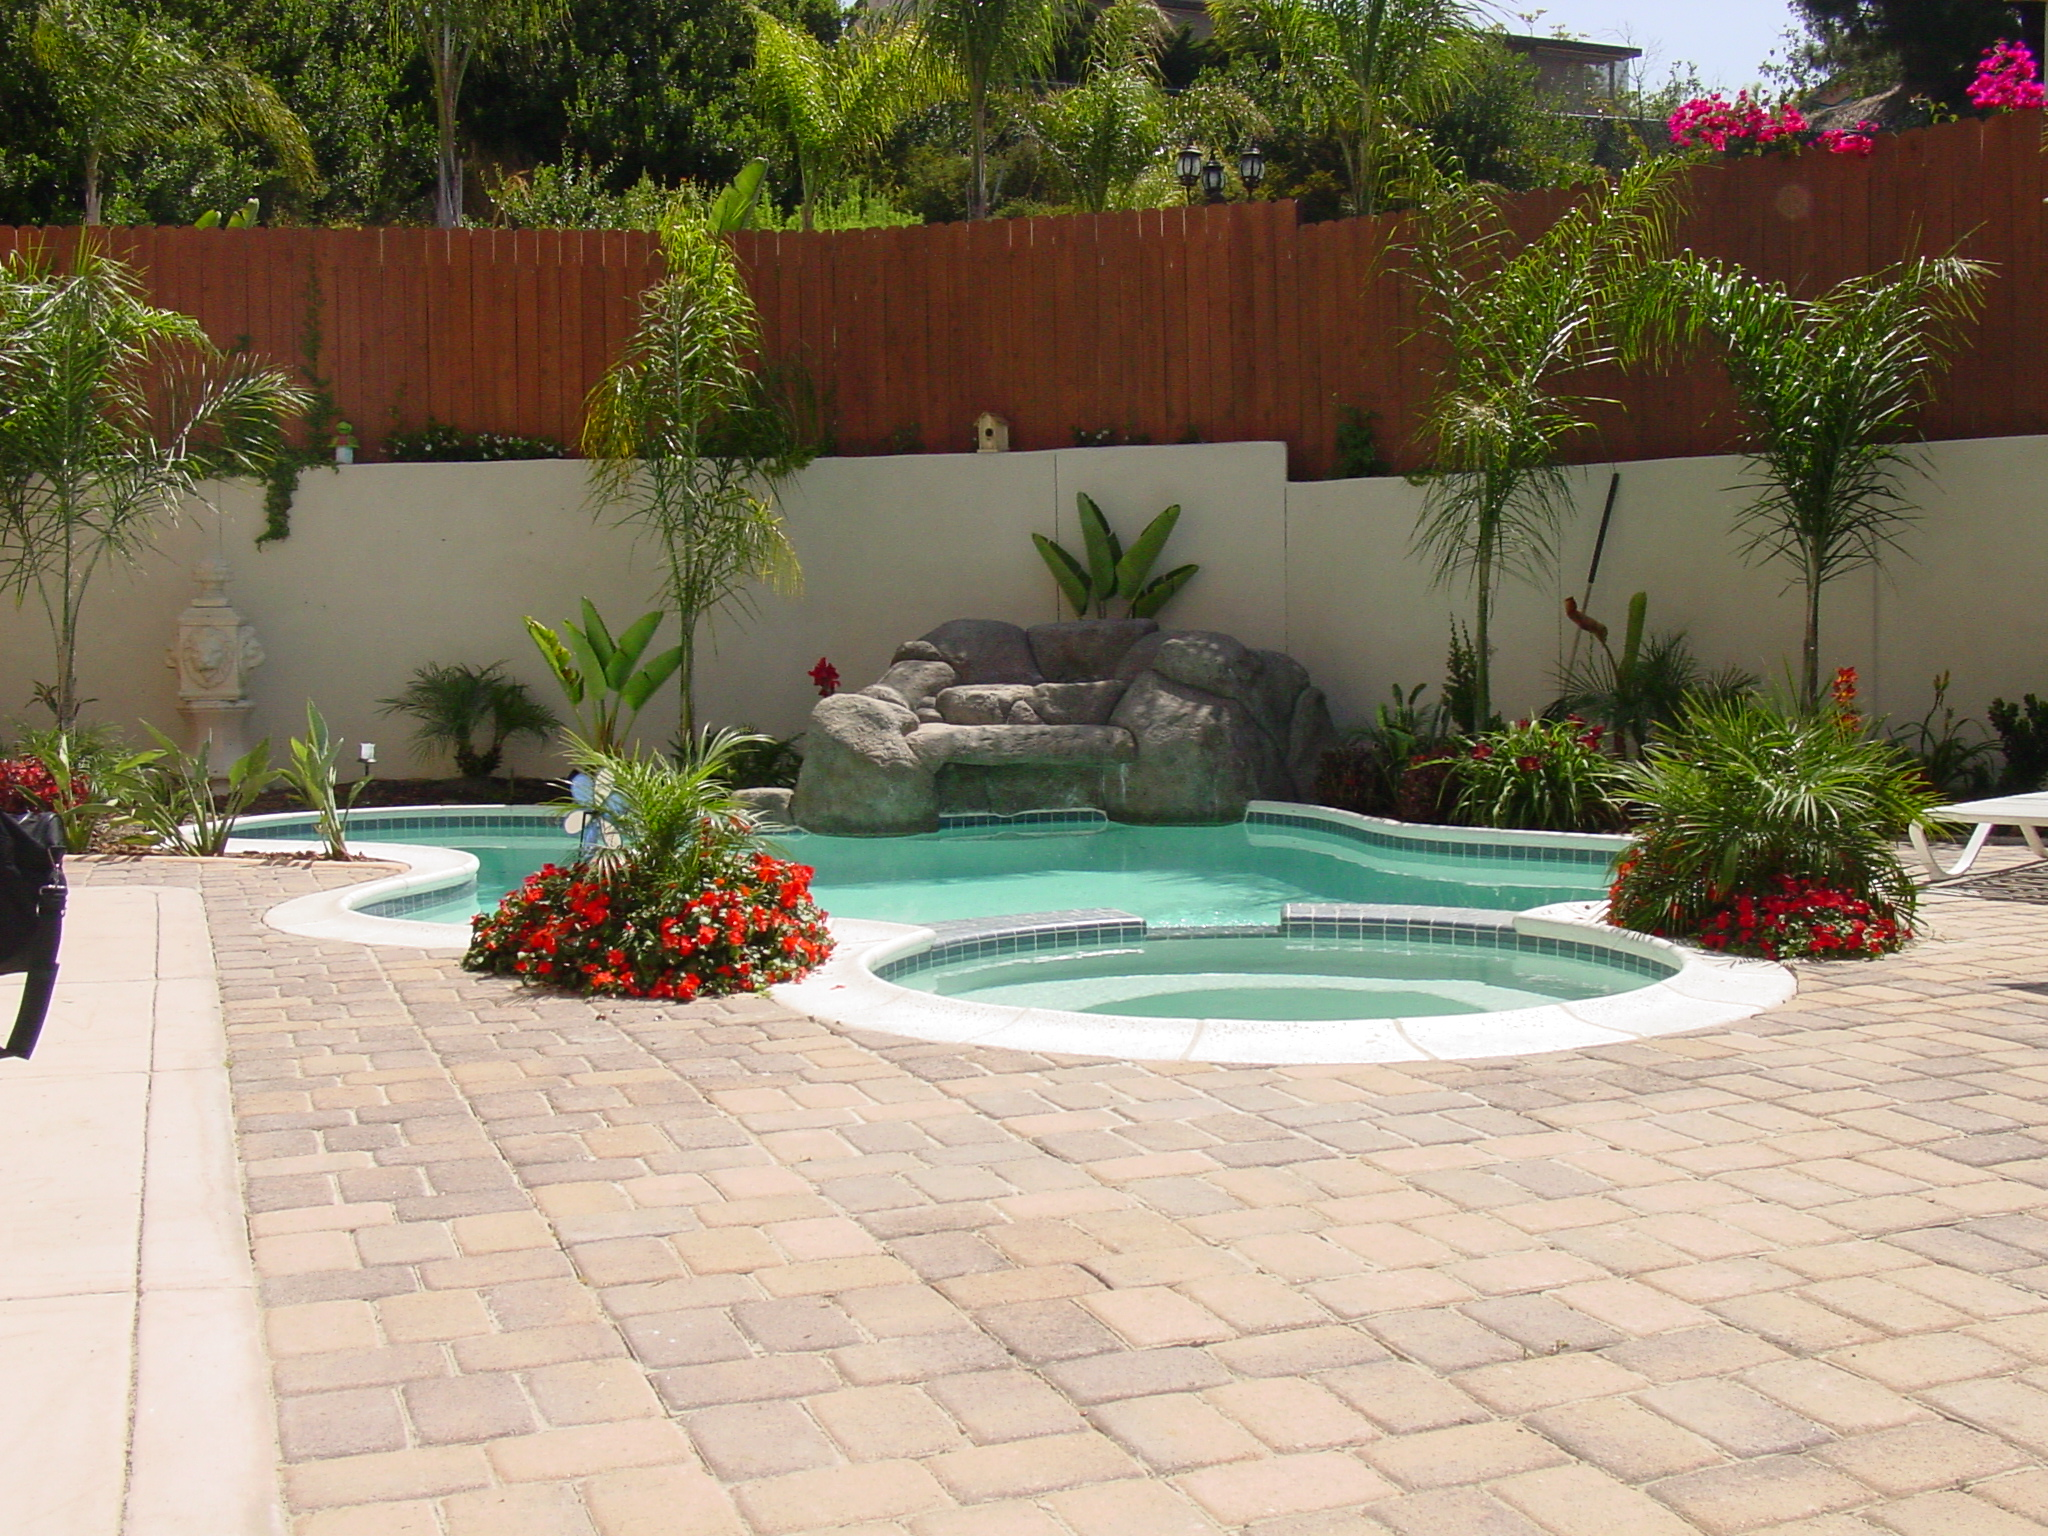 Free Form Design With White Safety Grip Coping Spa Deck Pavers And Rock Waterfall